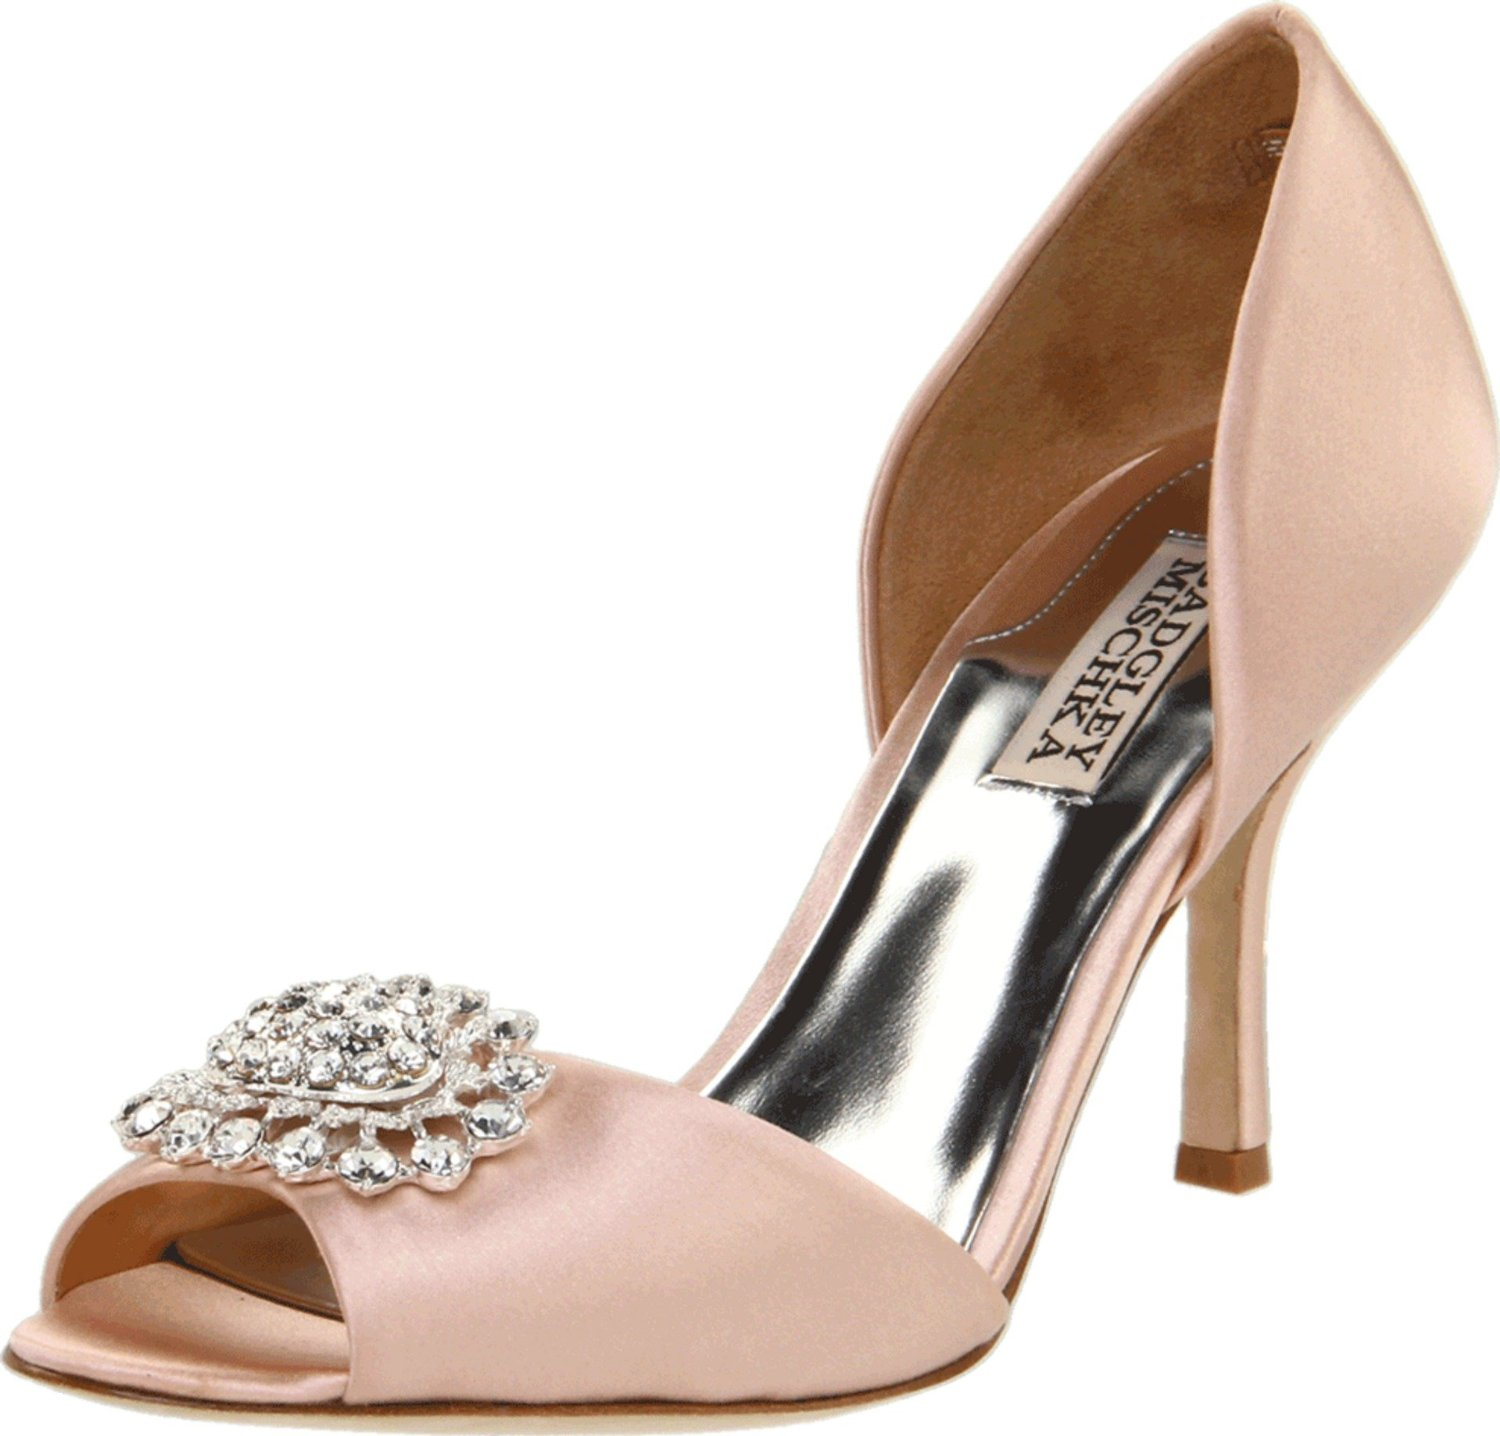 fashion trends badgley mischka shoes